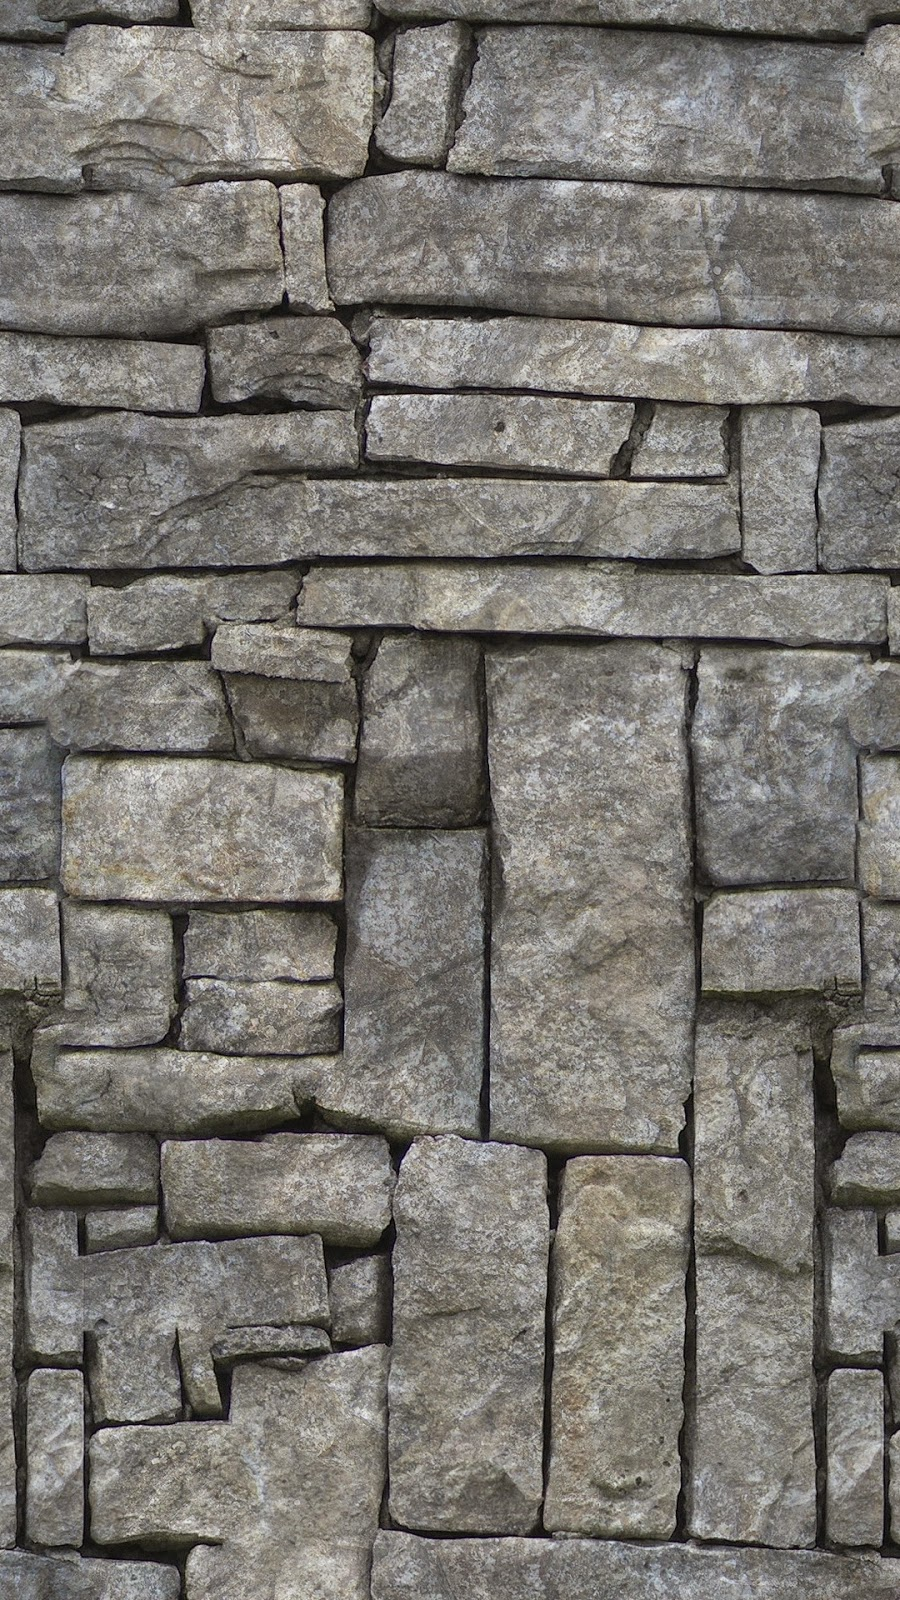 iPhone 6 plus hd Wallpaper stone wall